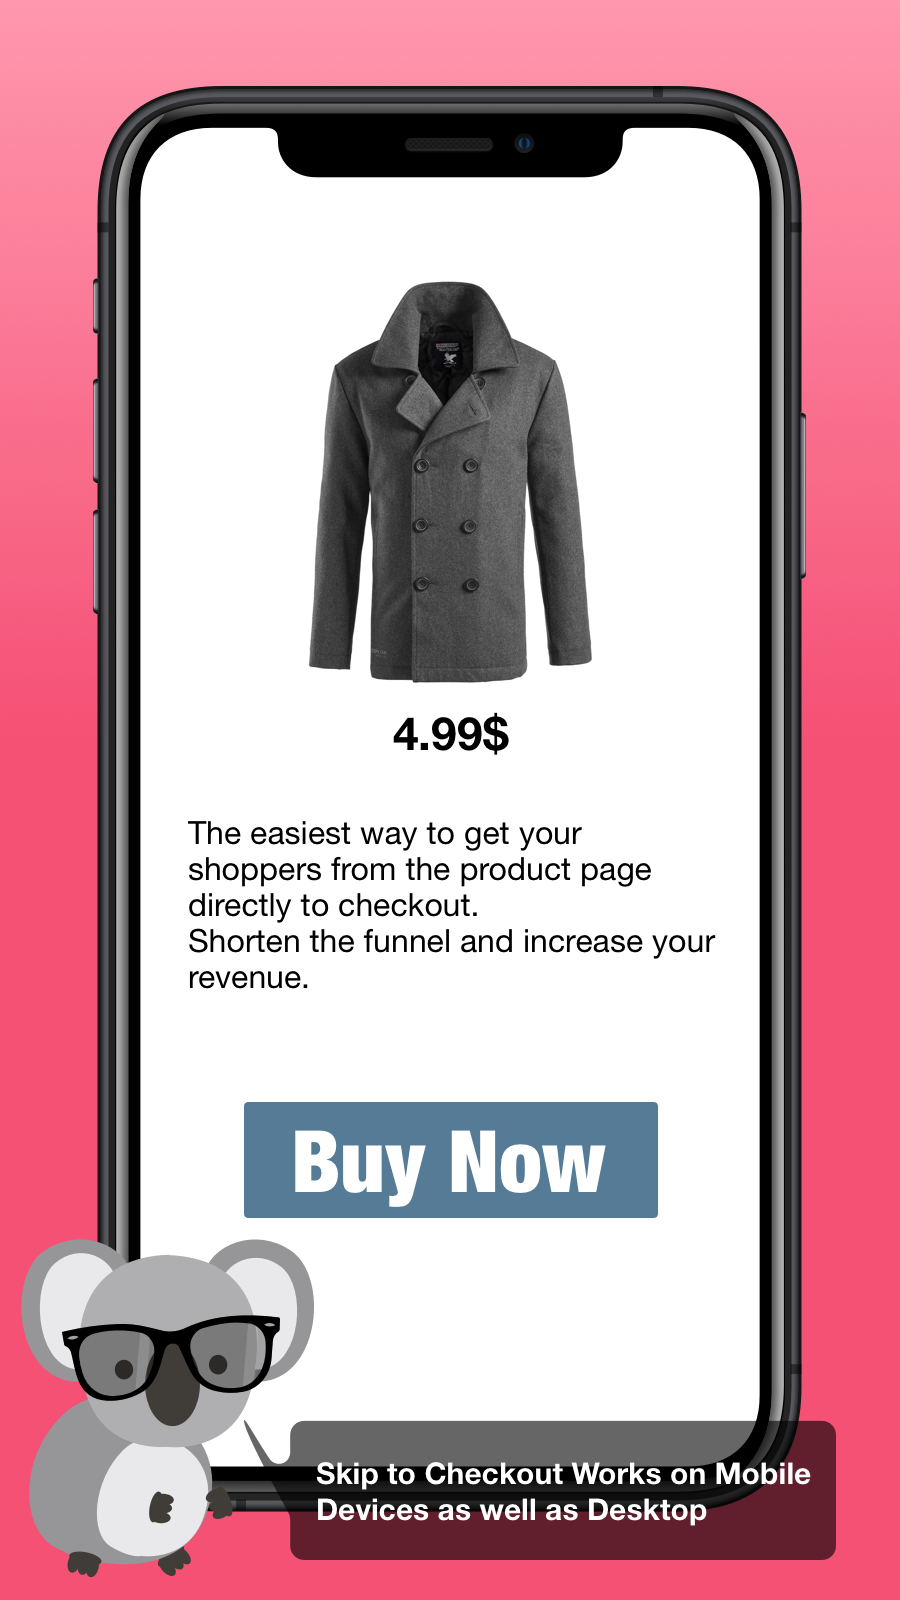 Mobile Skip to Checkout example